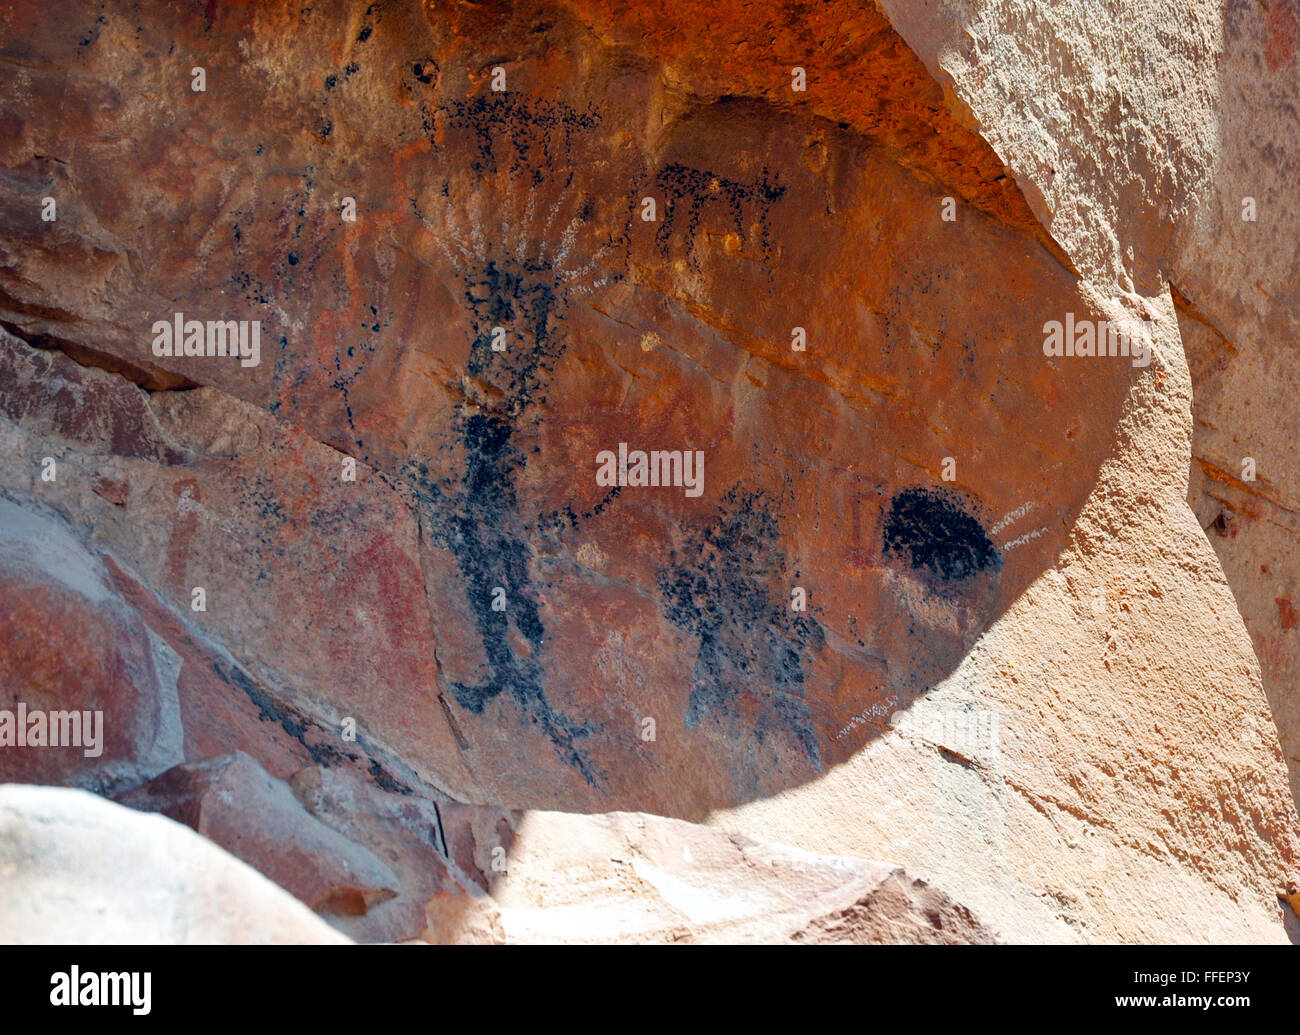 native american indian pictographs and petroglyphs rock face art